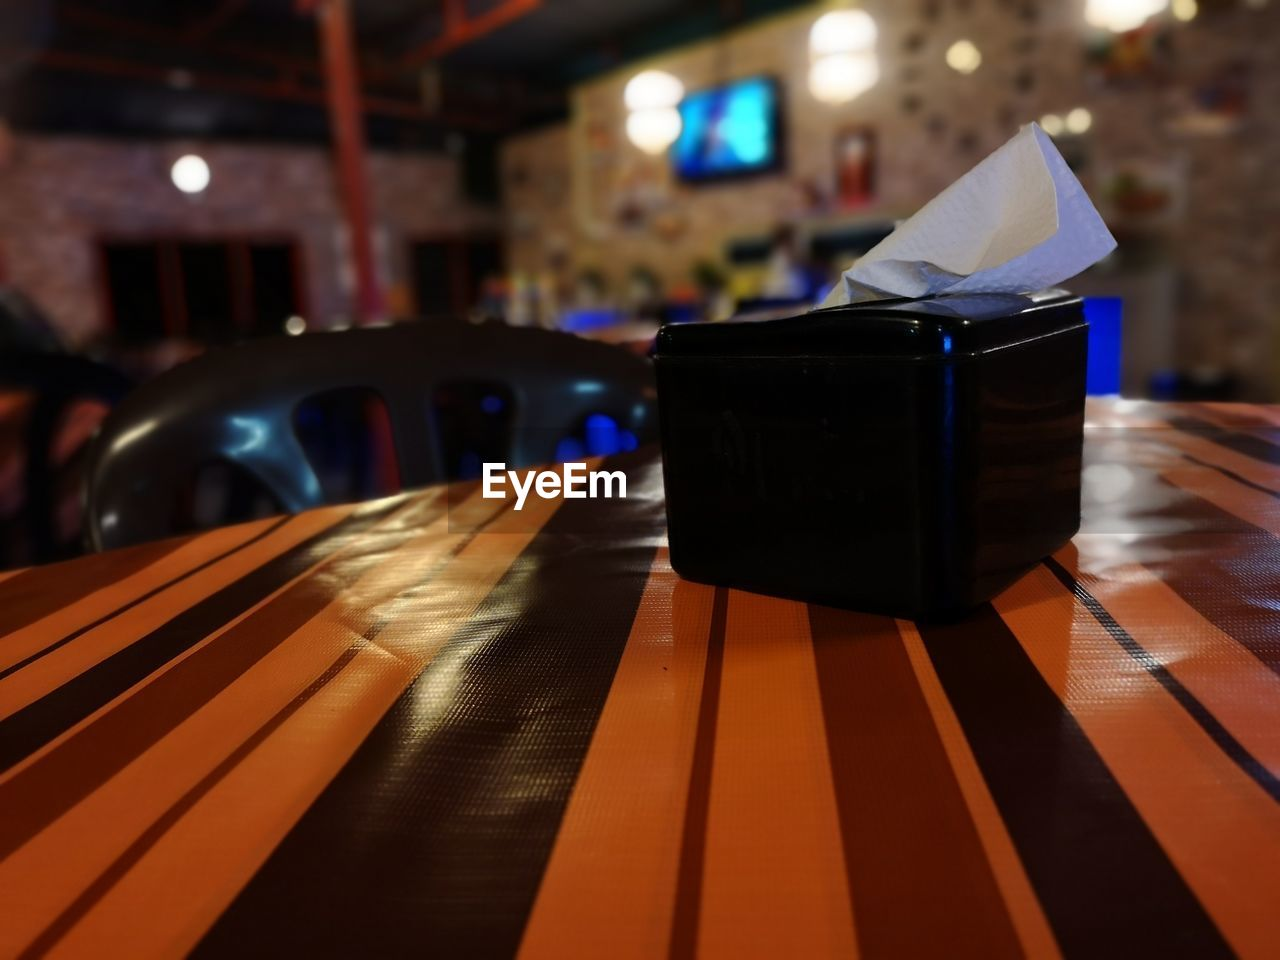 indoors, focus on foreground, illuminated, table, close-up, no people, wood - material, still life, paper, seat, night, restaurant, flooring, chair, luxury, lighting equipment, wealth